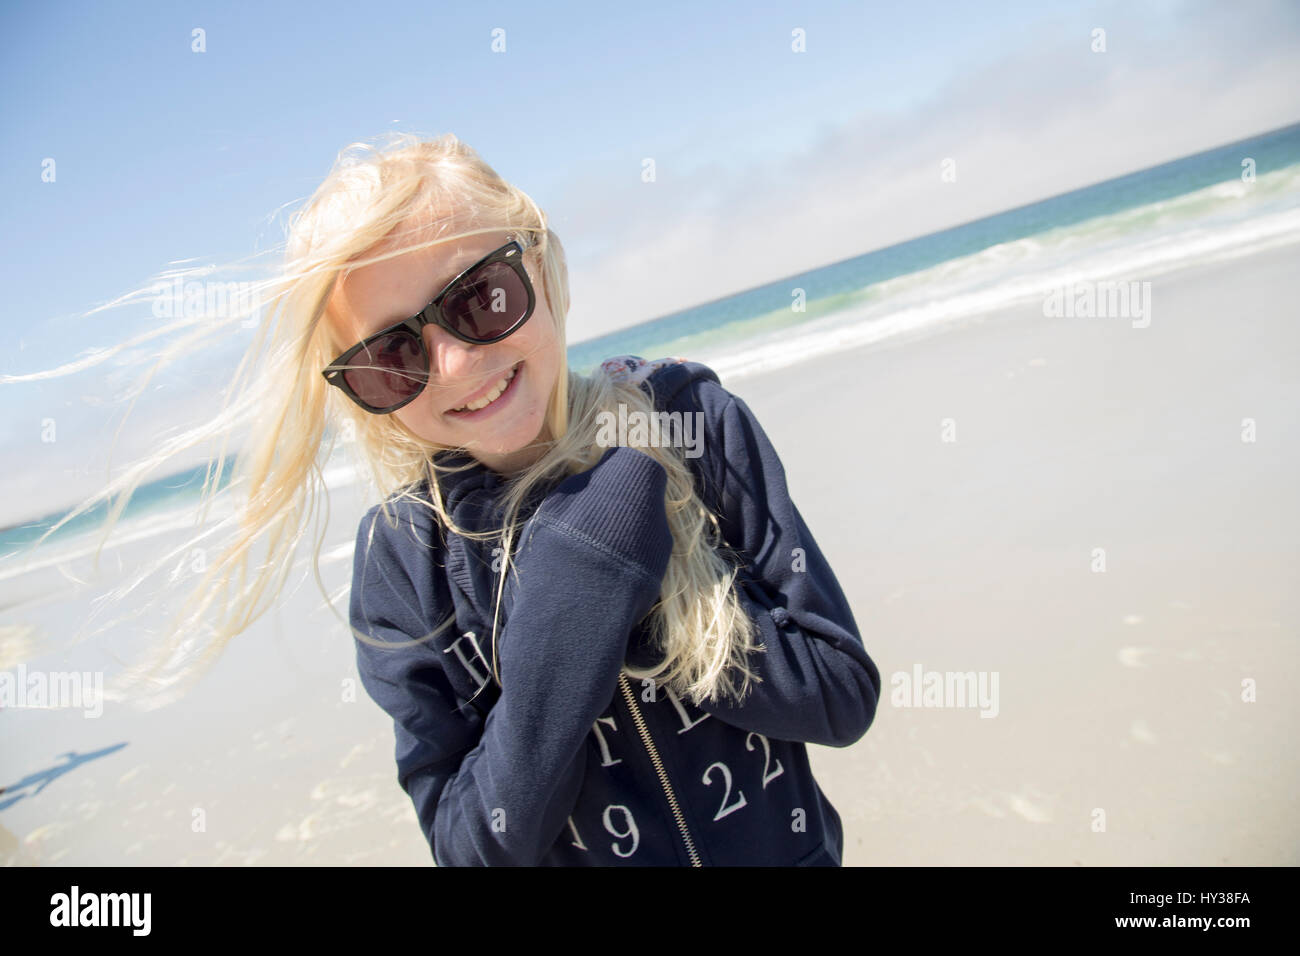 USA, California, Carmel-by-the-Sea, Smiling blonde girl (12-13) wearing sunglasses on beach - Stock Image